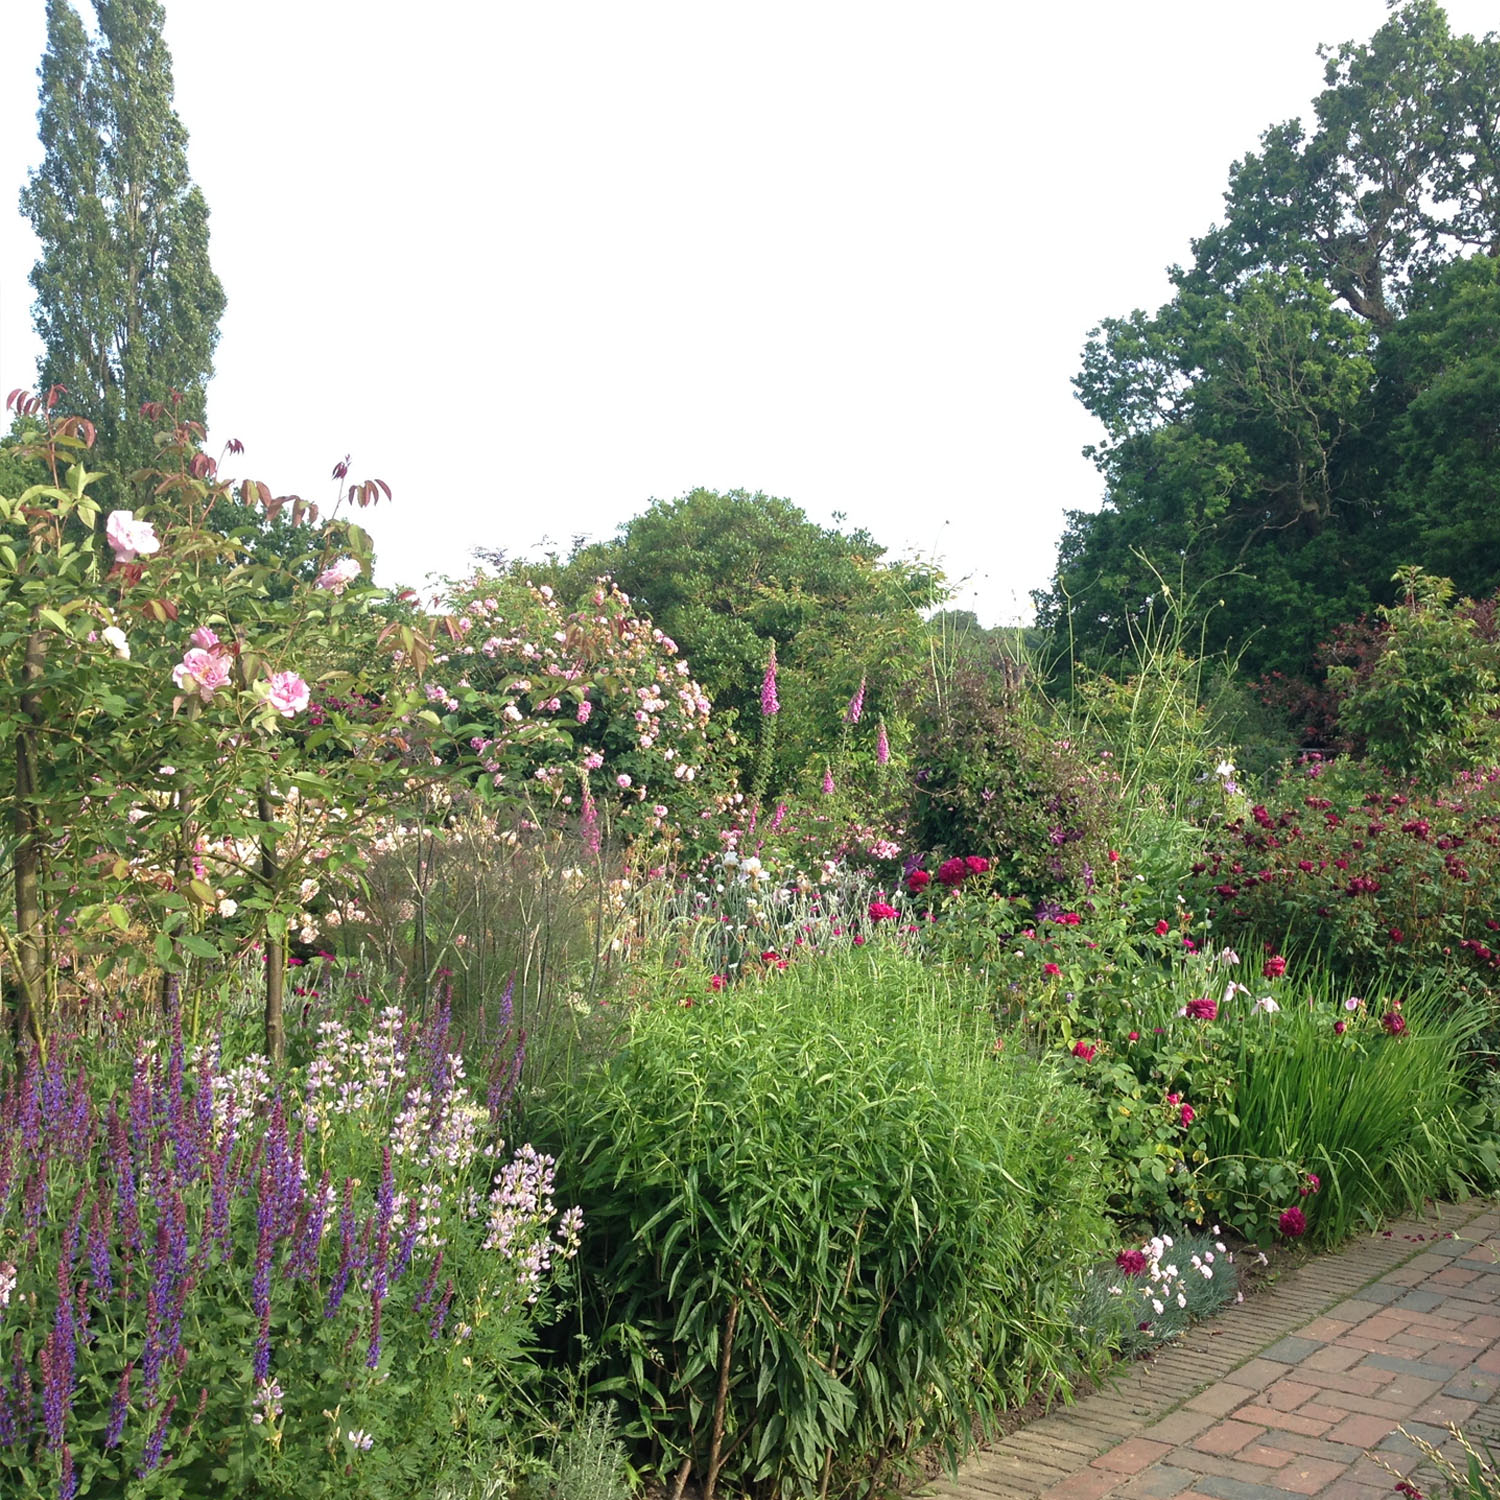 Sissinghurst rose borders with not a patch of earth to be seen